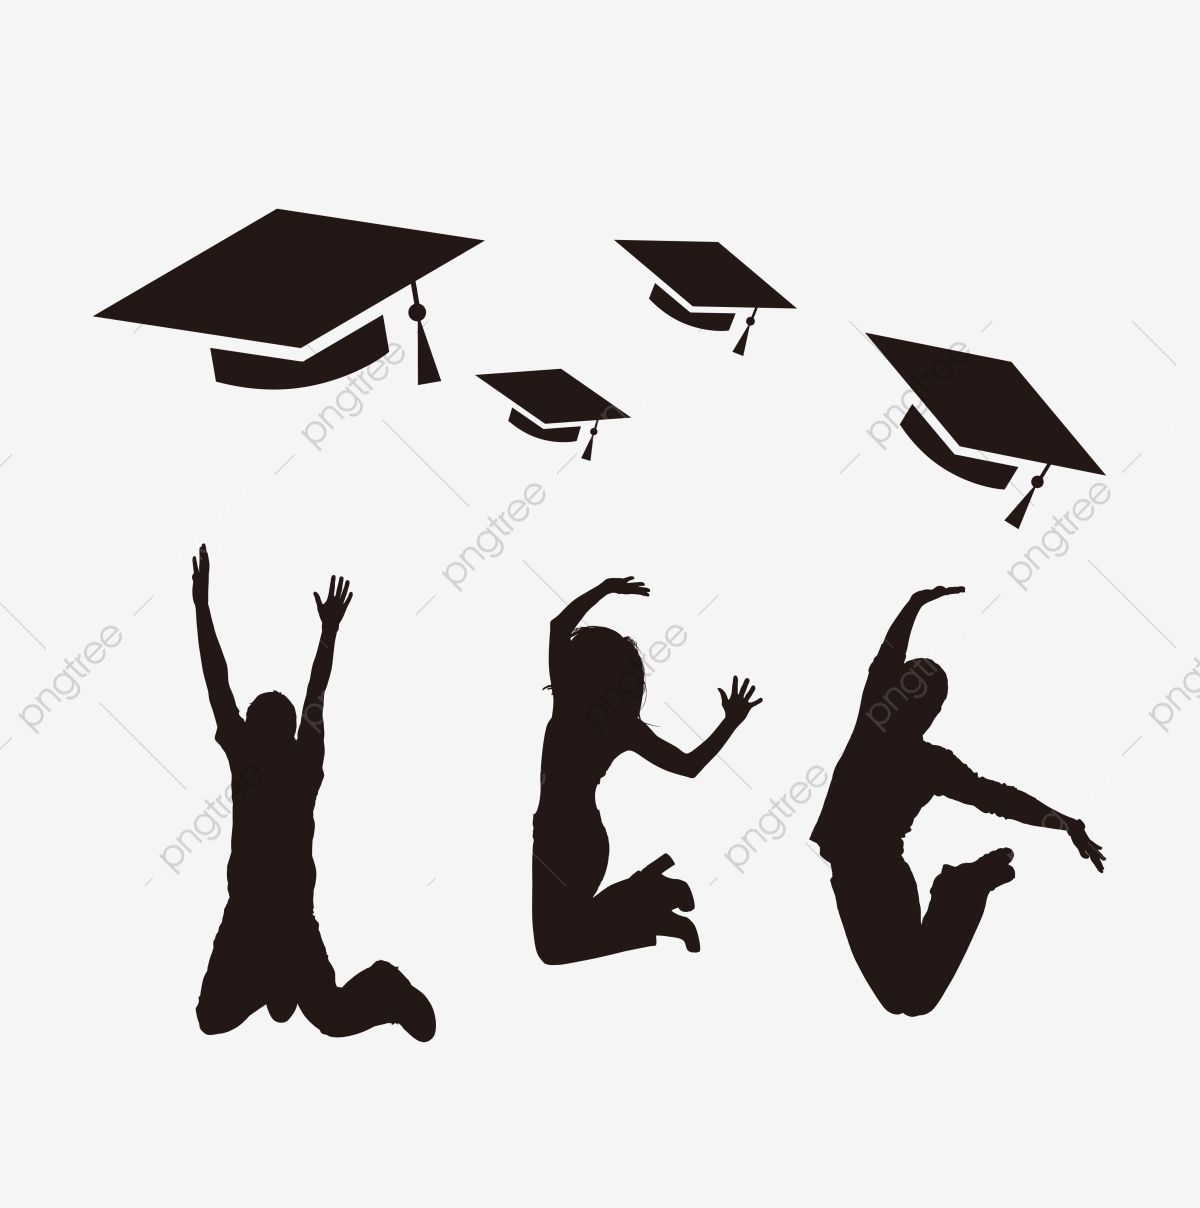 Youth Campus Jumping Silhouette Graduation Season Textbook Jumping Clipart Bachelor Cap Bachelor Gown Png And Vector With Transparent Background For Free Dow City Silhouette Student Cartoon Tree Silhouette